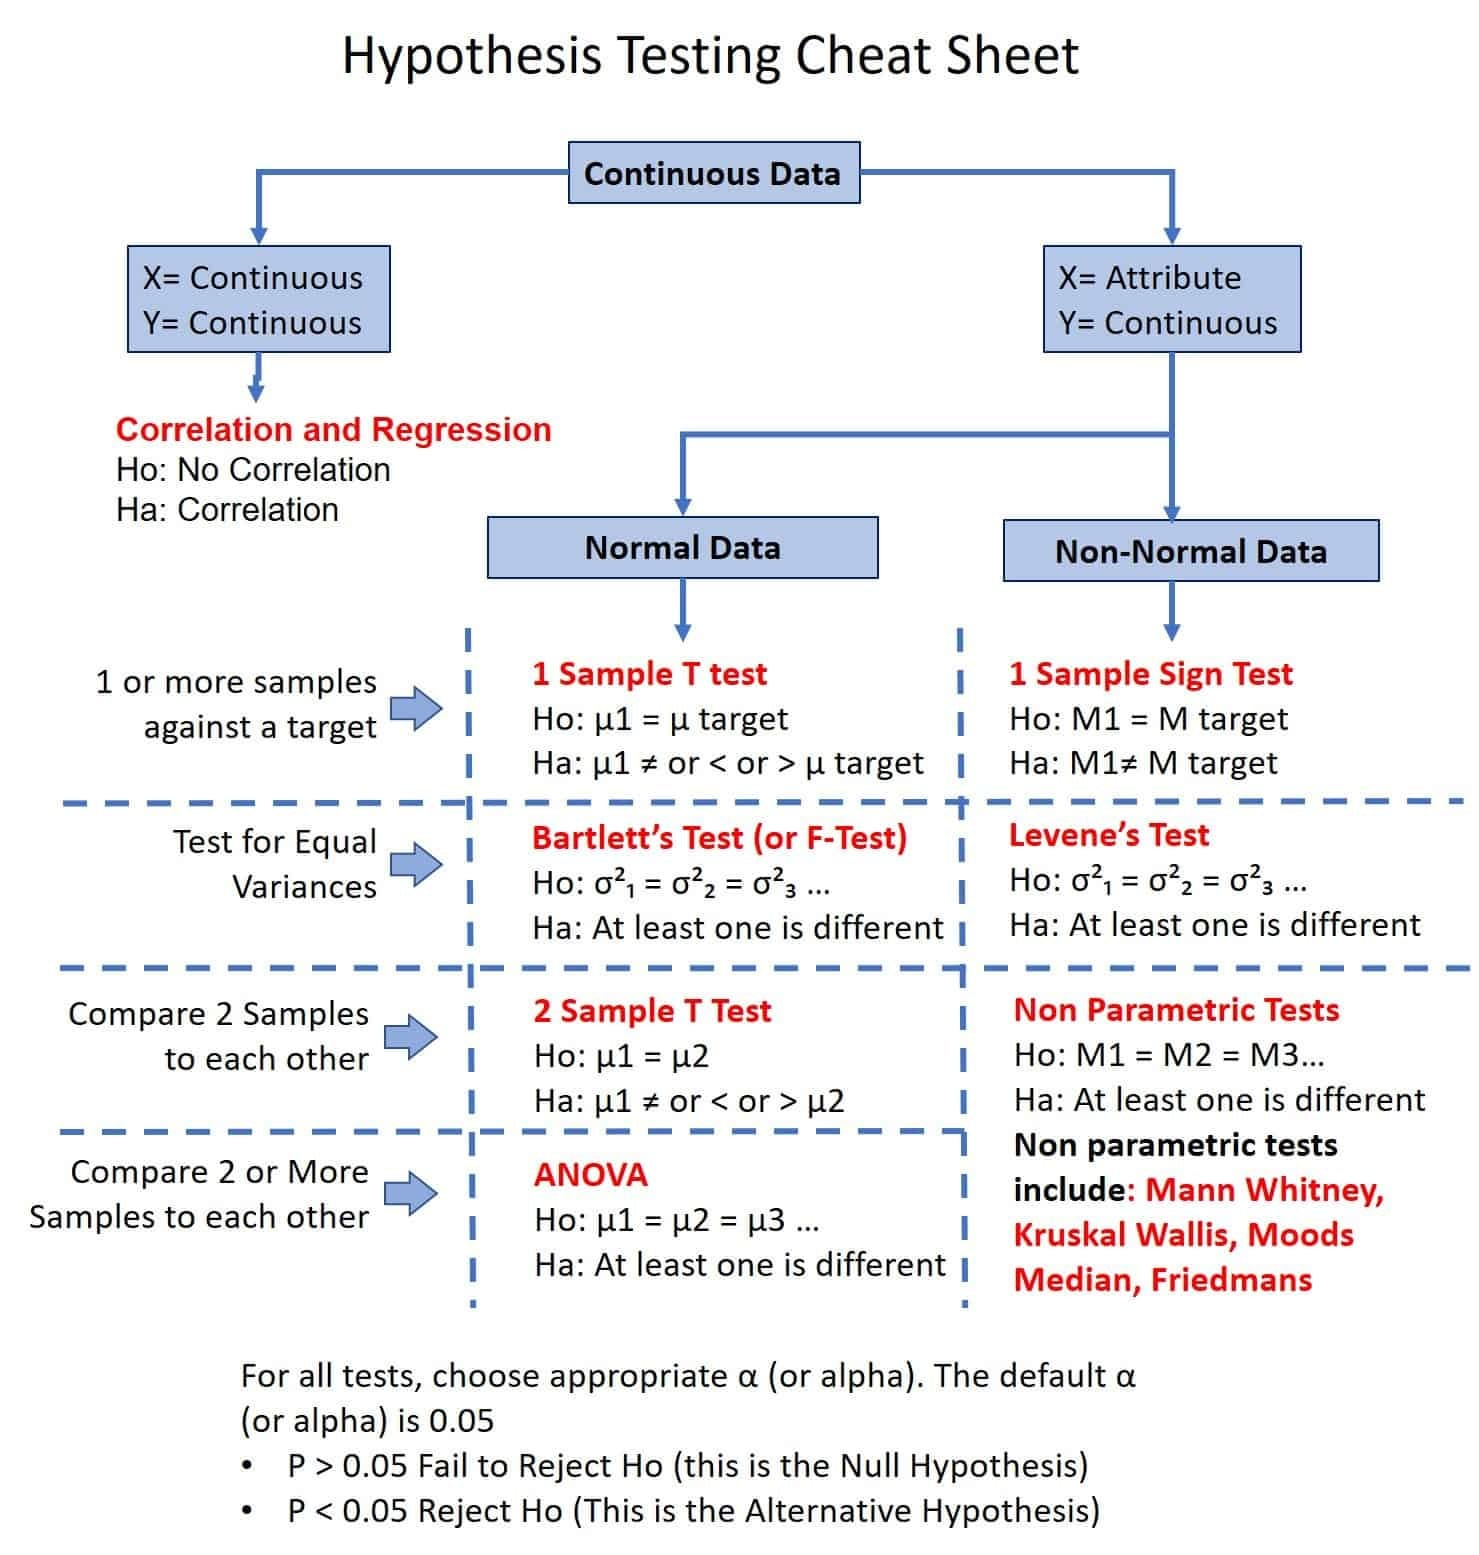 Hypothesis Testing Cheat Sheet